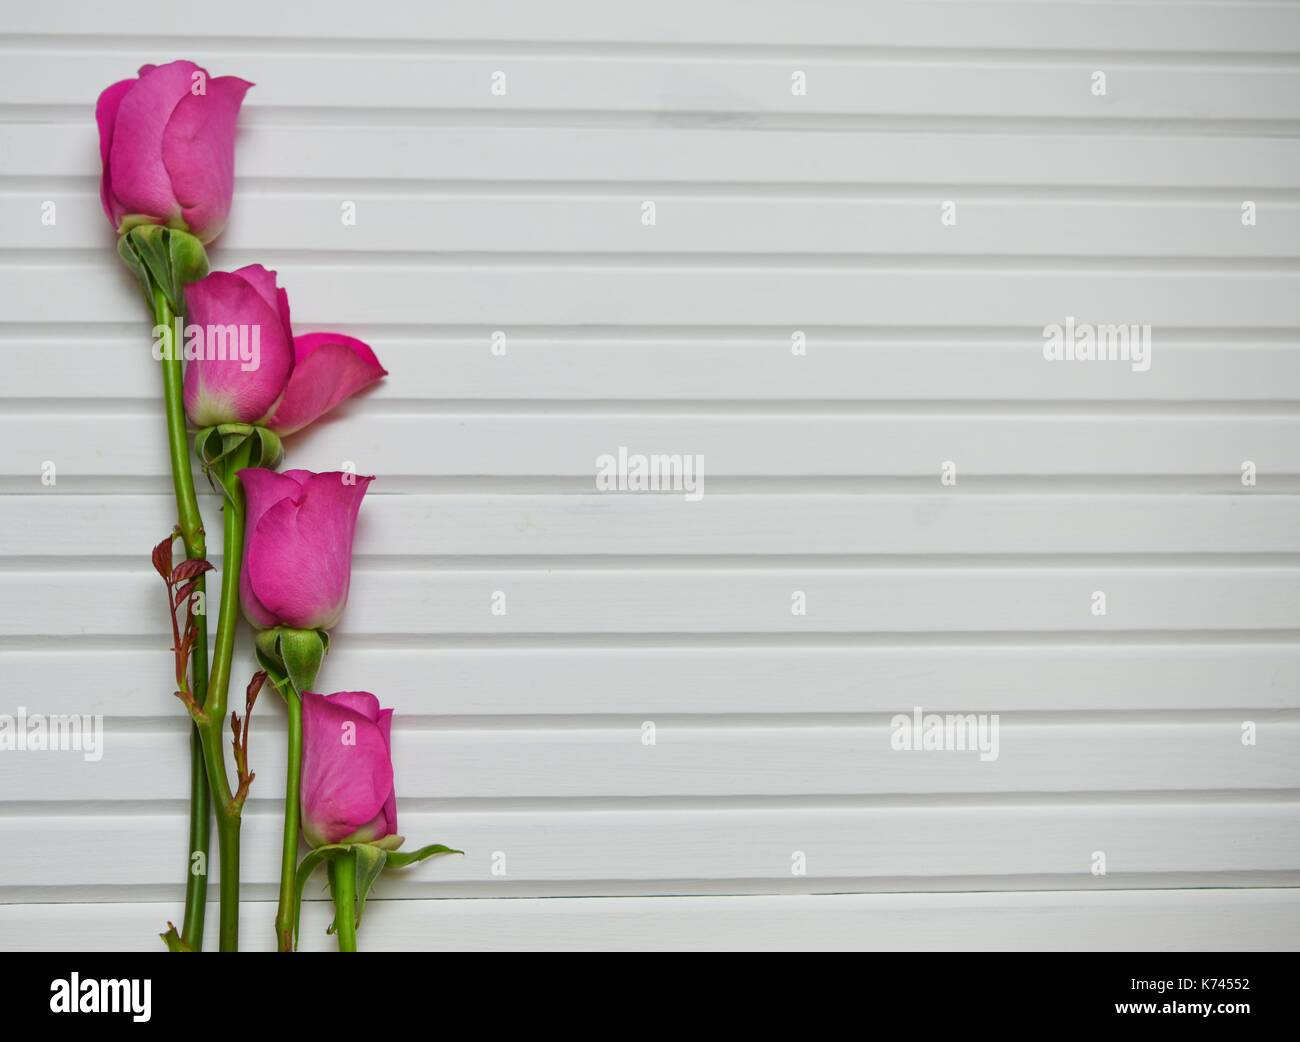 Valentine Romantic Flower Photography Image Of Four Bright Pink